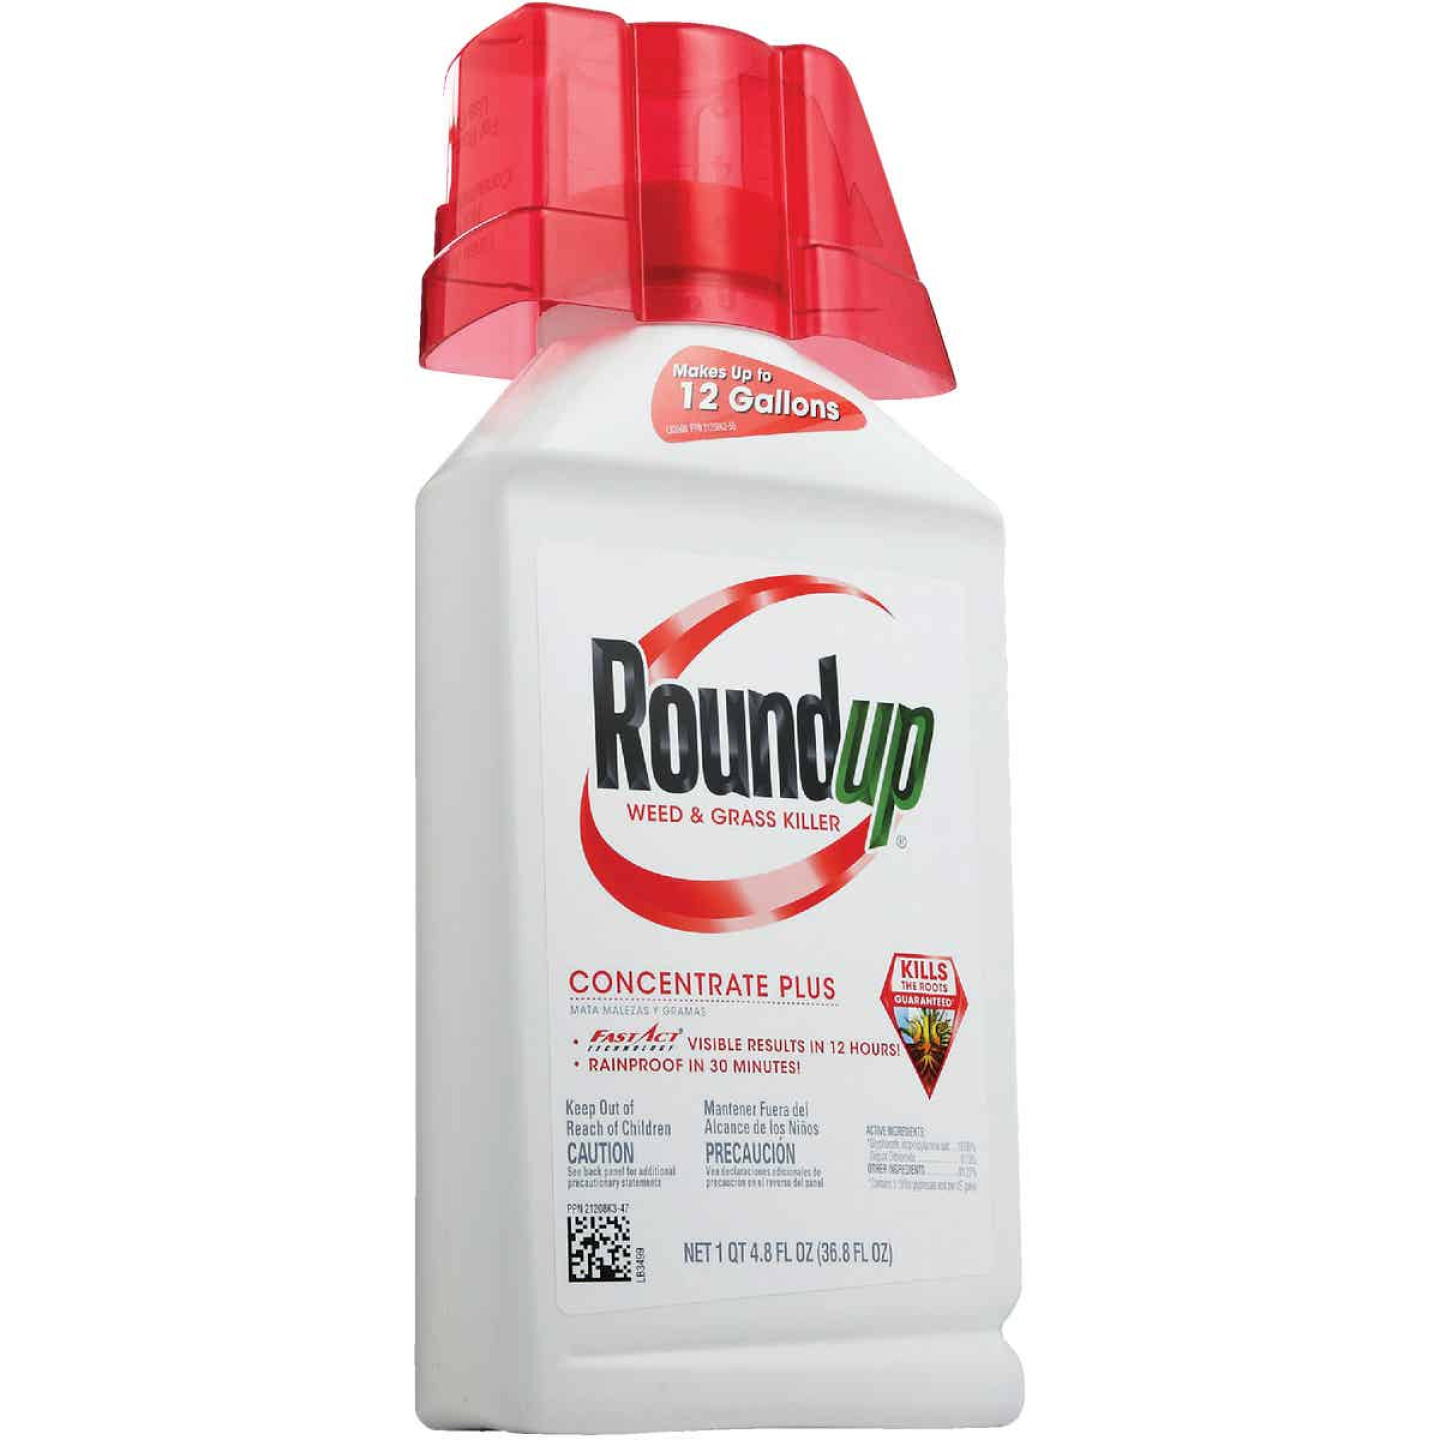 Roundup 36.8 Oz. Concentrate Plus Weed & Grass Killer Image 4